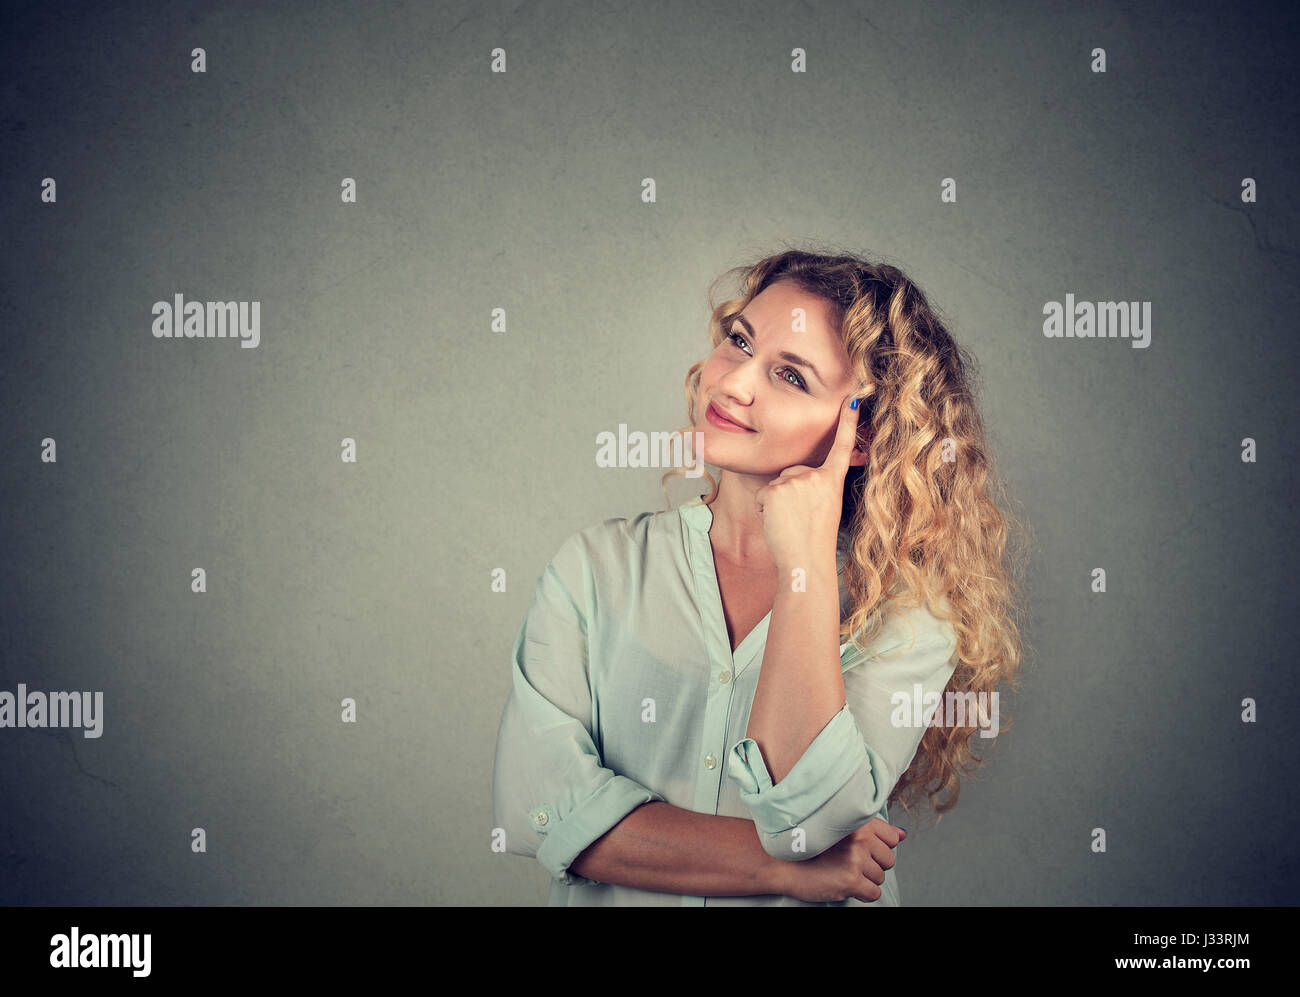 Portrait happy beautiful woman thinking looking up isolated on gray wall background with copy space. Human face - Stock Image